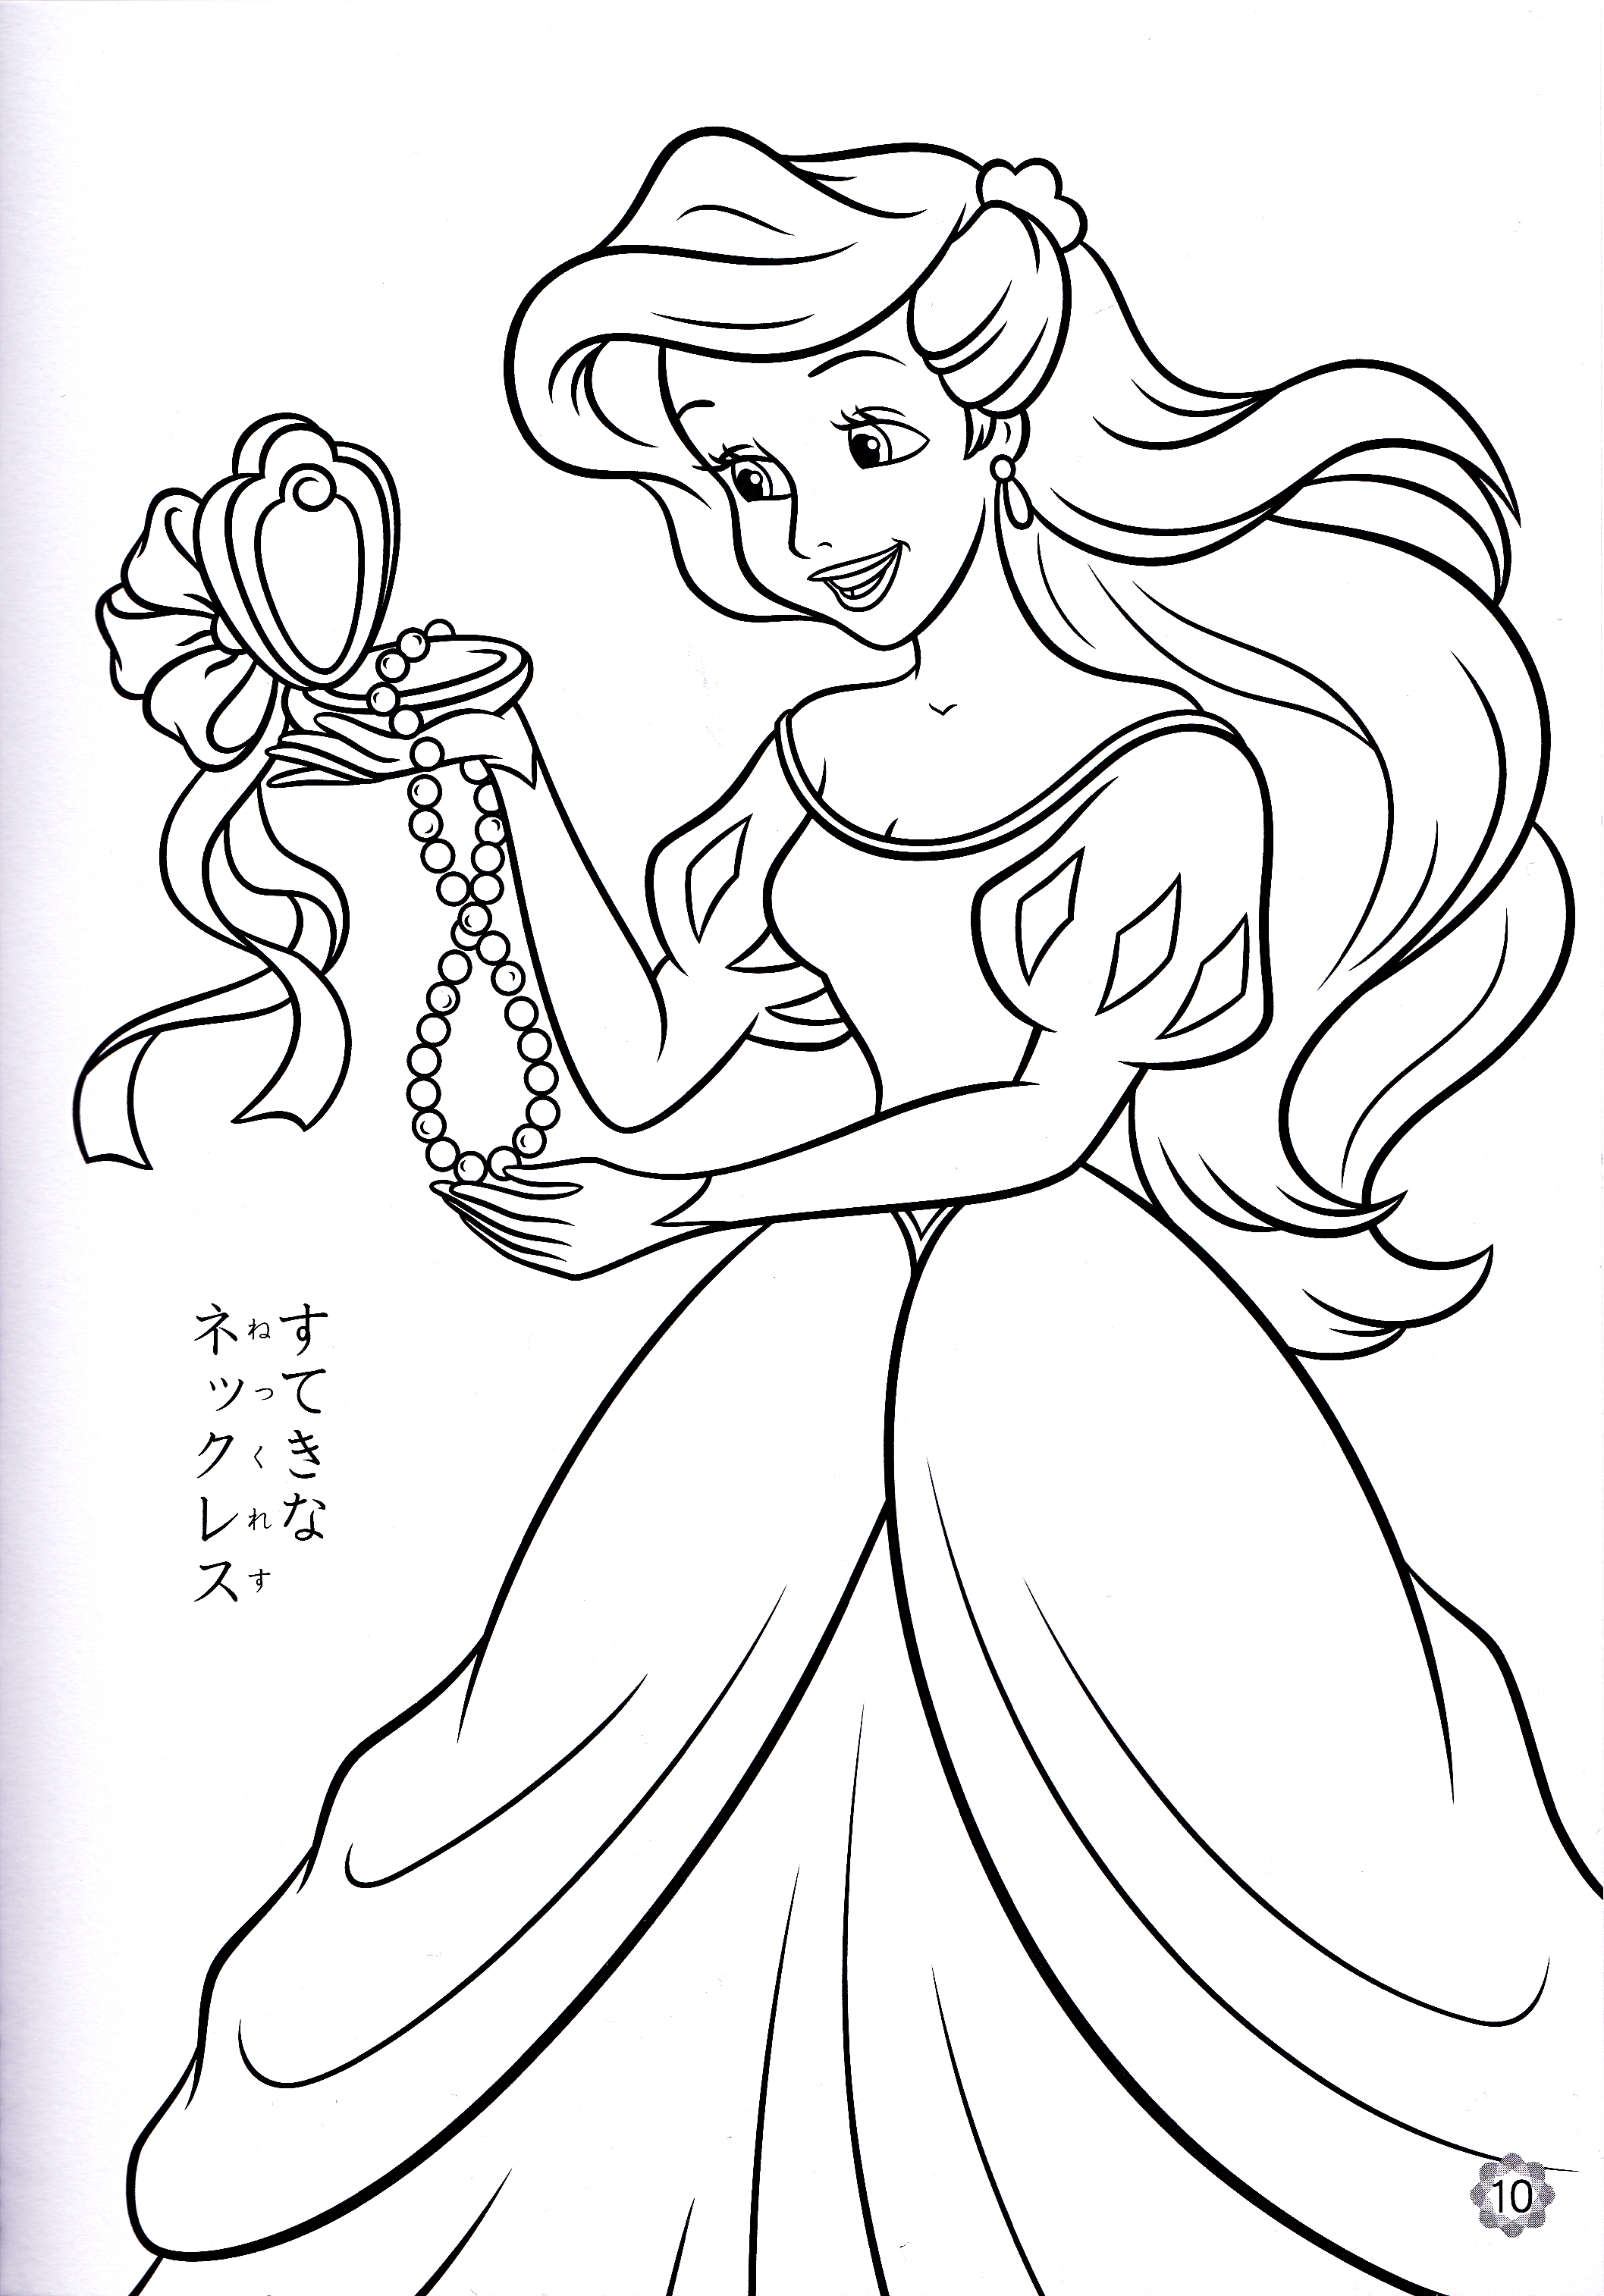 Drawn princess colouring page Posts Coloring images guides Coloring